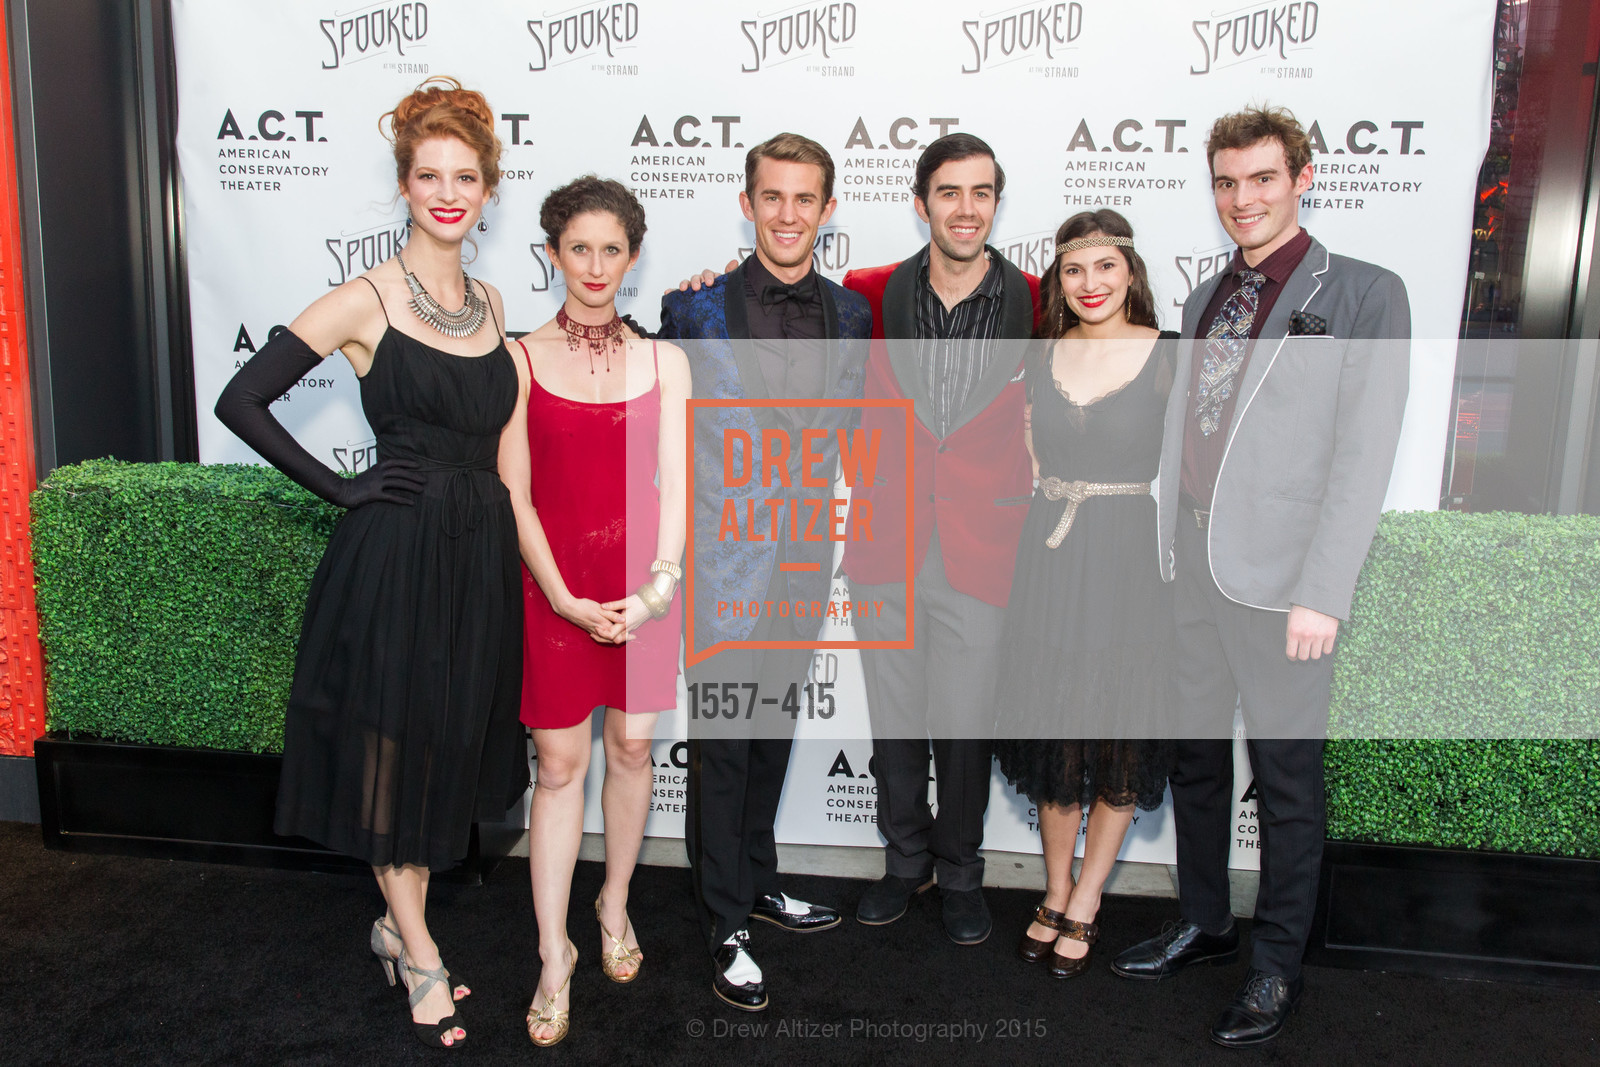 Kaitlyn Taylor, Jennifer Reddish, Matthew Cabaret, Michael McIntyre, Lauren Hart, Thomas Stagnita, SPOOKED AT THE STRAND Presented by the American Conservatory Theater, The Strand Theater. 1127 Market Street, October 26th, 2015,Drew Altizer, Drew Altizer Photography, full-service agency, private events, San Francisco photographer, photographer california